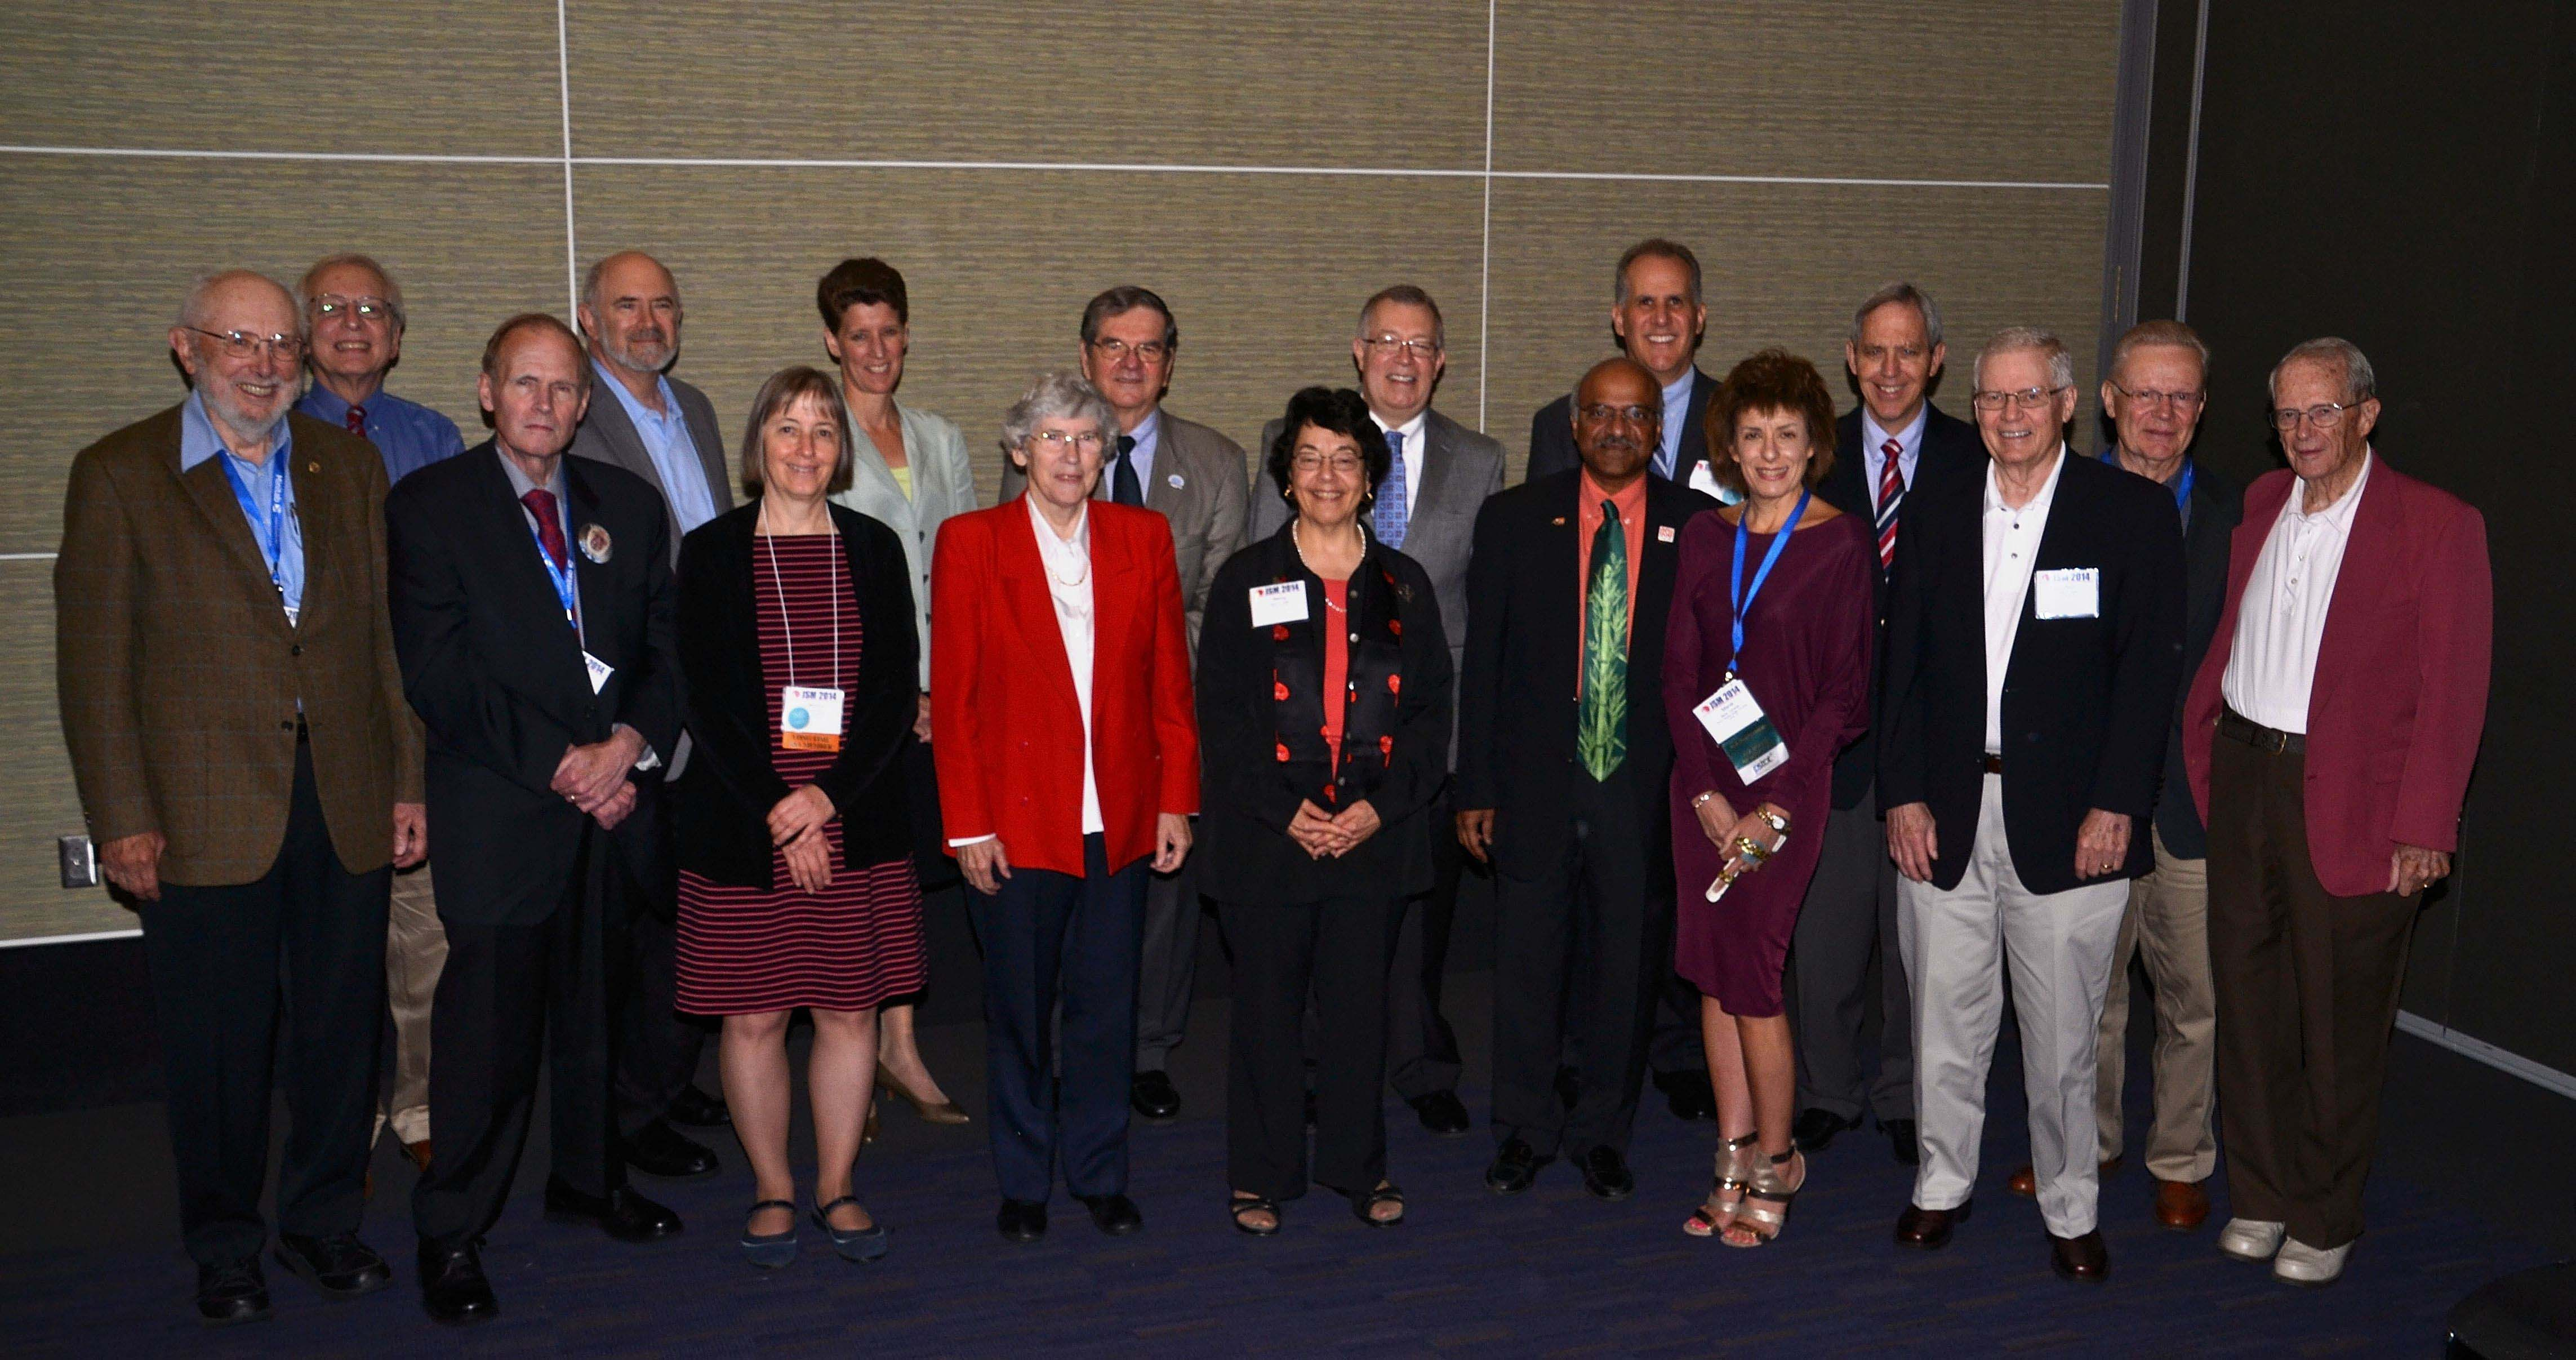 ASA past presidents and executive directors get together during a roundtable to reminisce